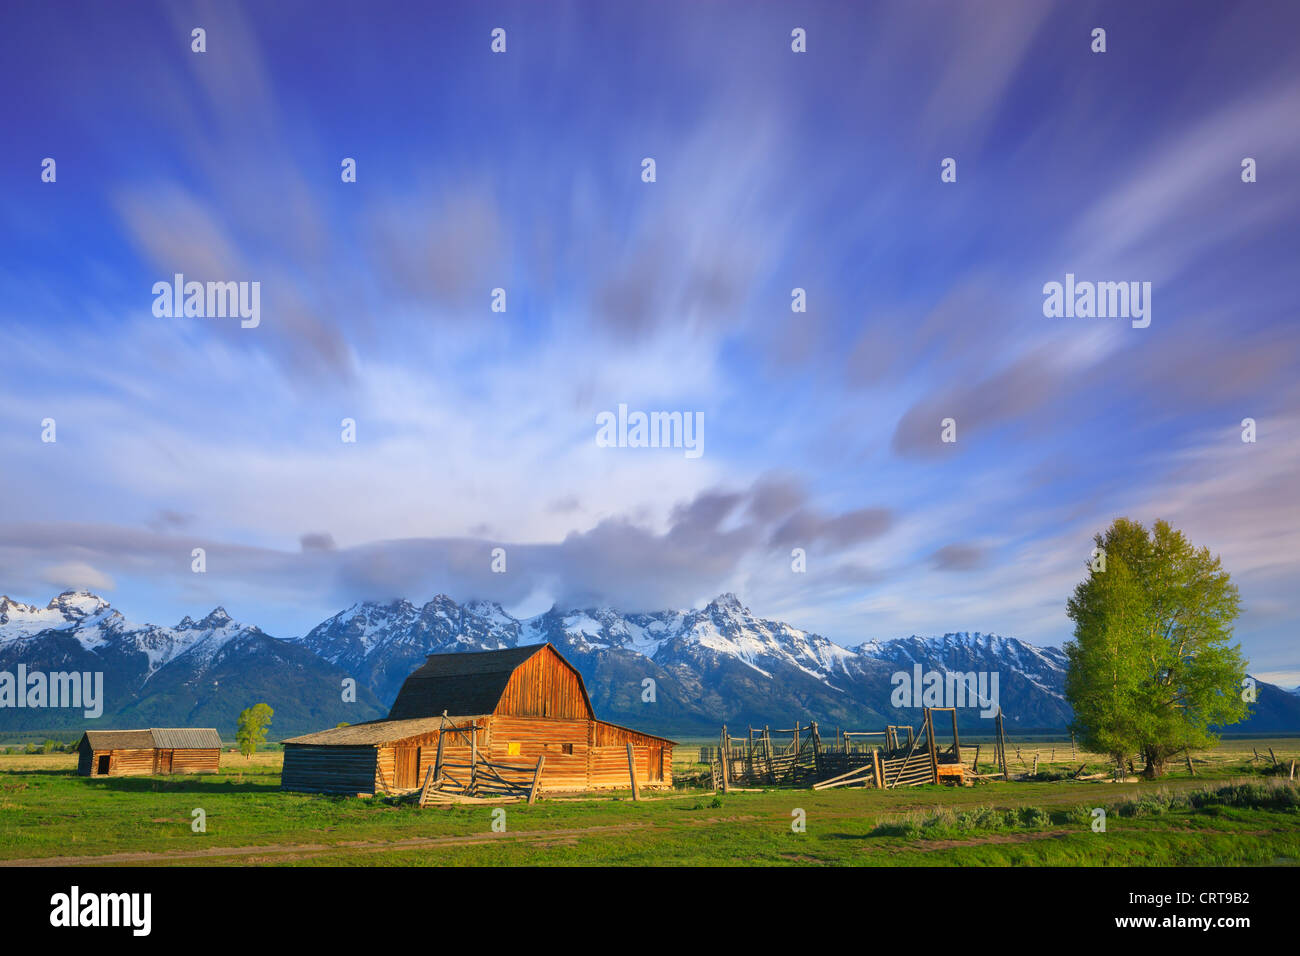 T.A Moulton Barn in Grand Teton National Park - Stock Image